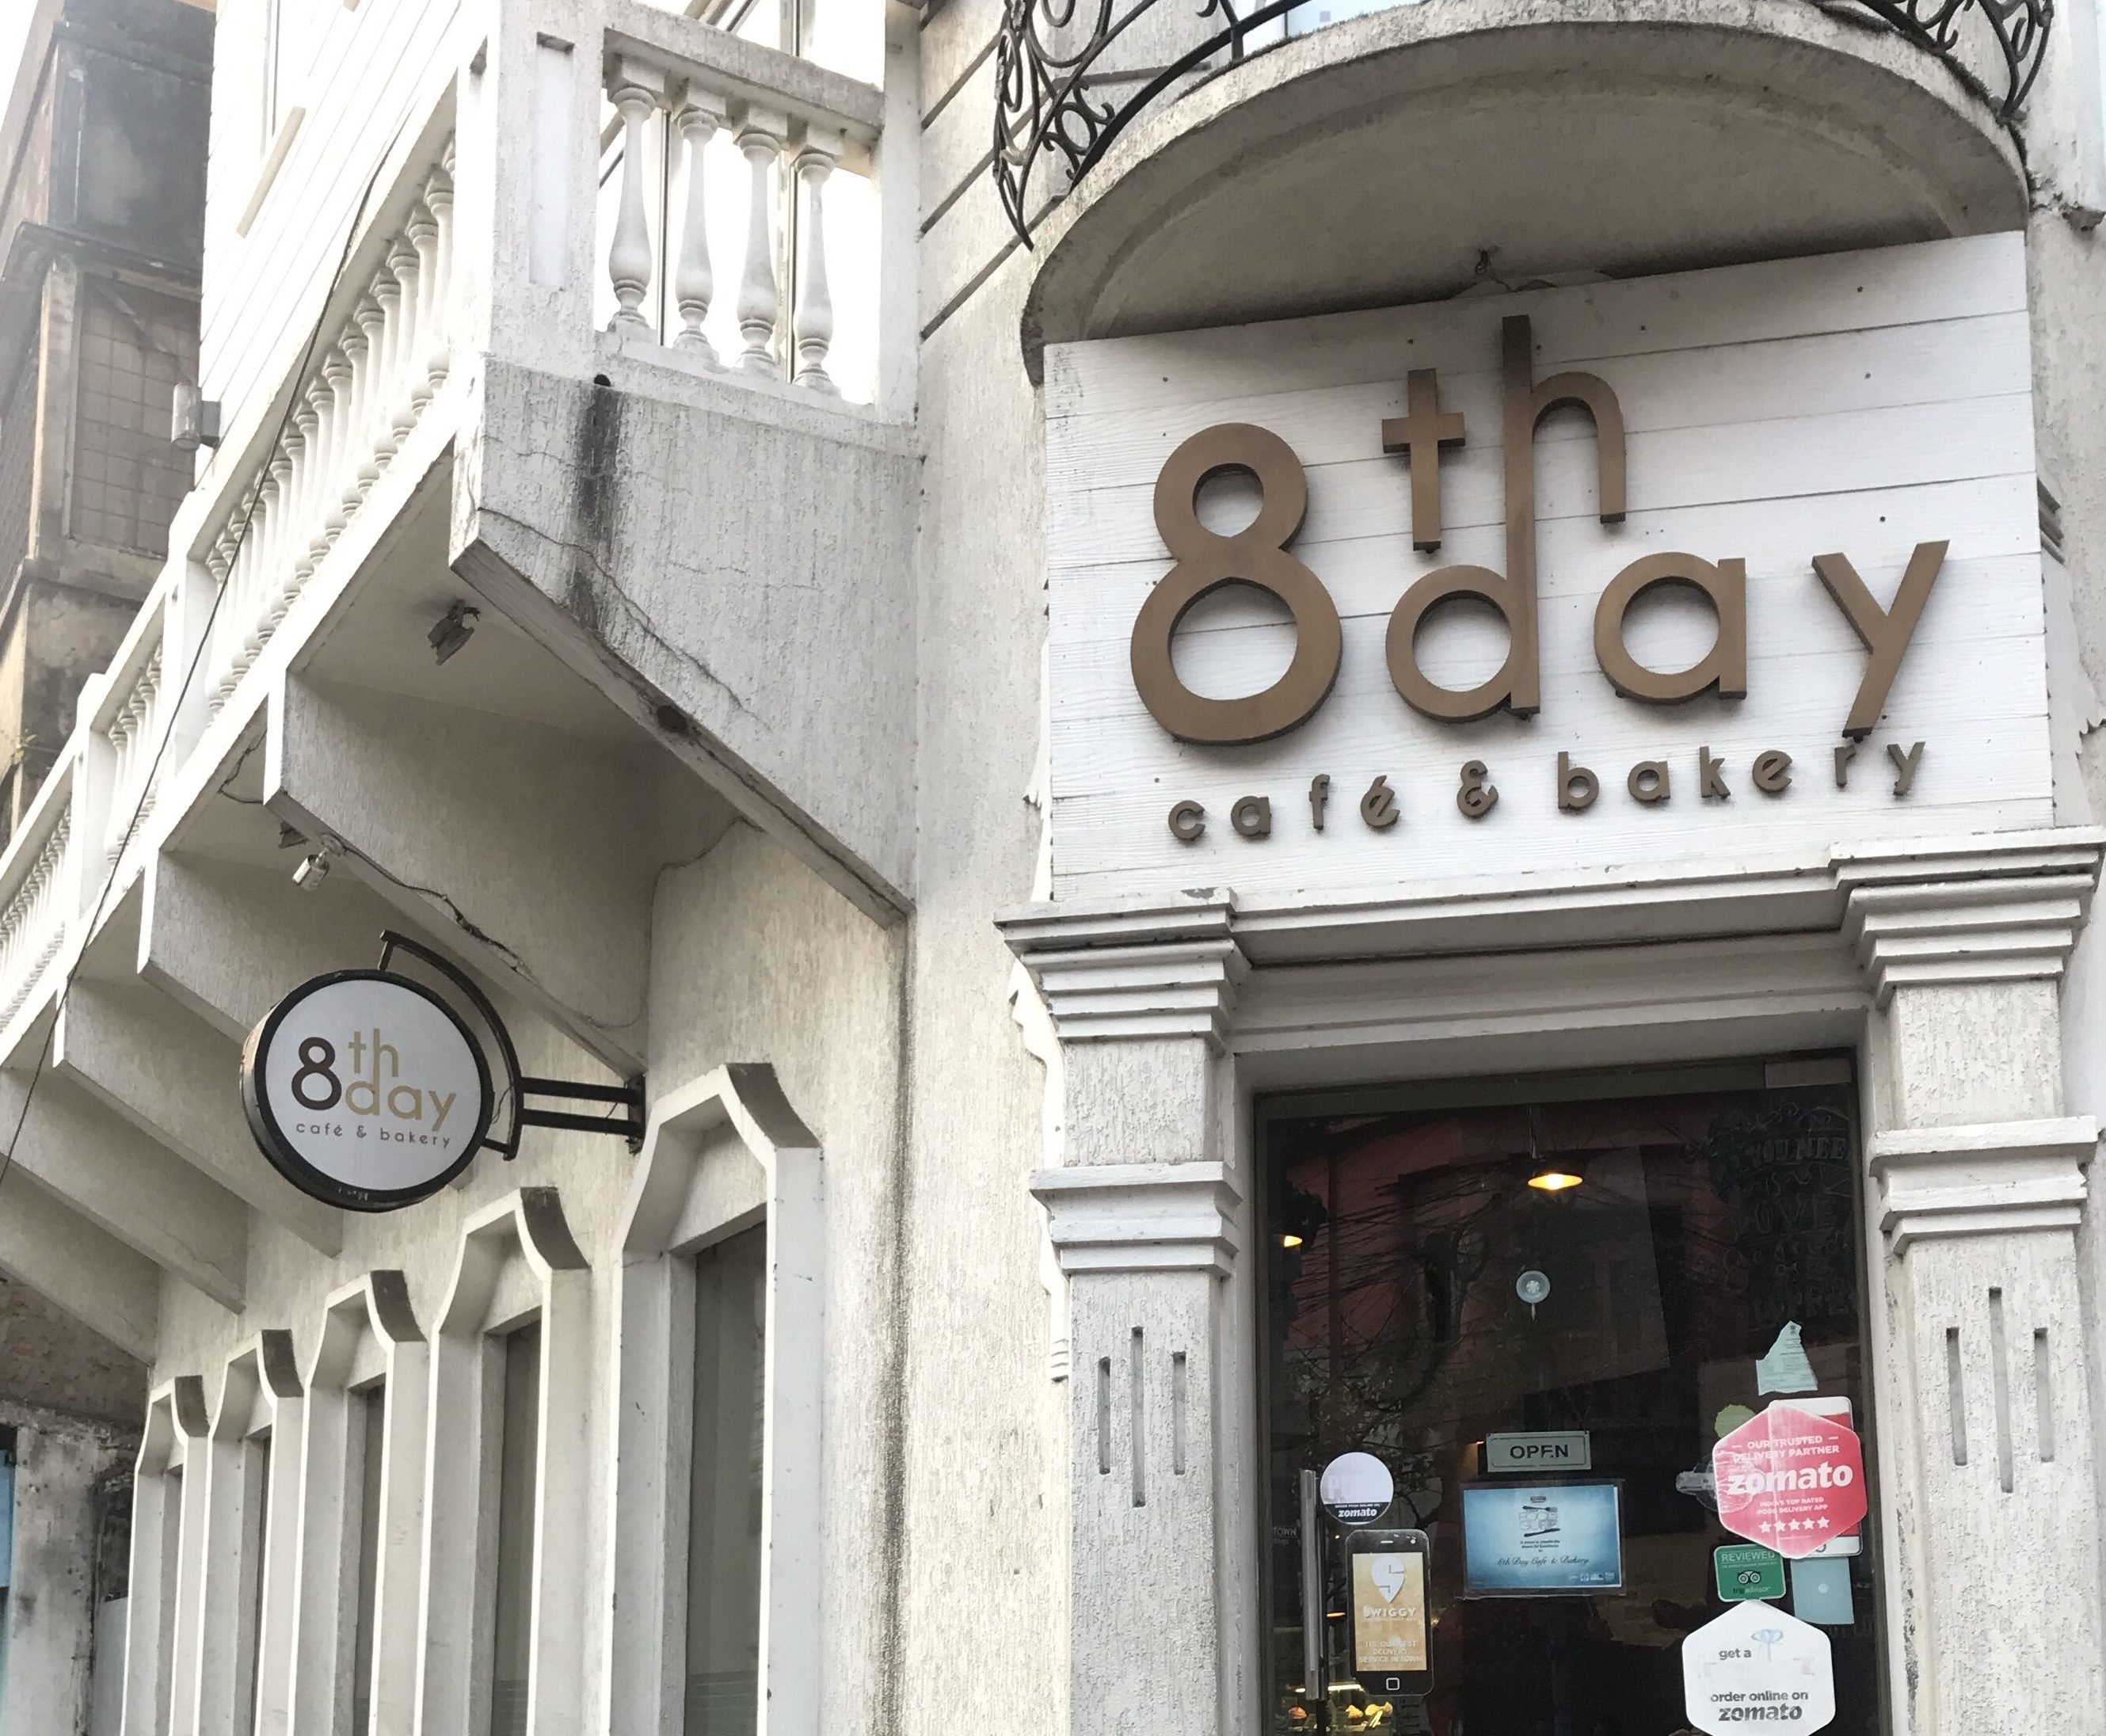 8th day Cafe & Bakeryの入り口